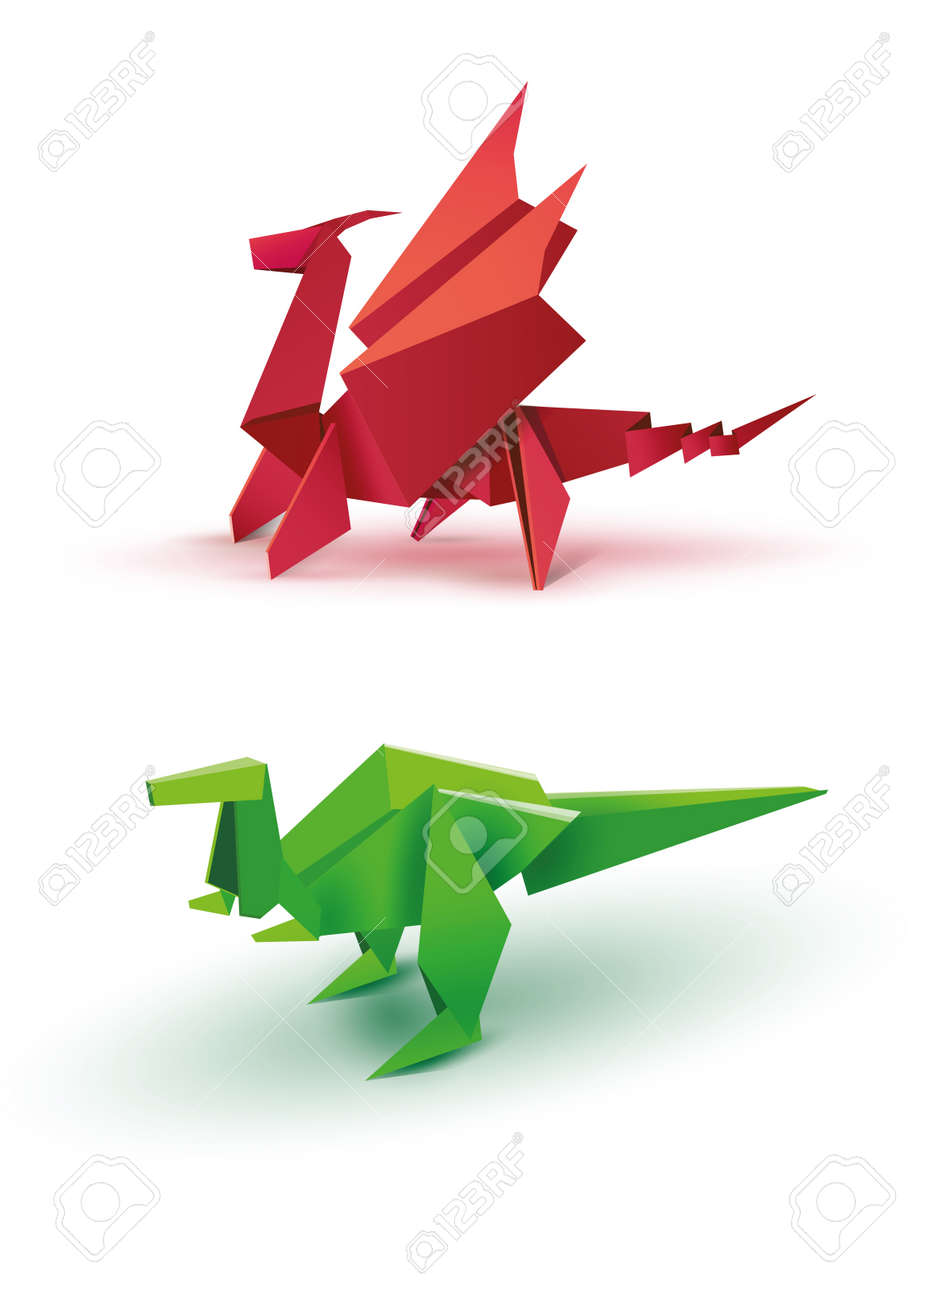 How To Make A Paper Dinosaur - Origami Dinosaur Easy And Fast ... | 1300x927